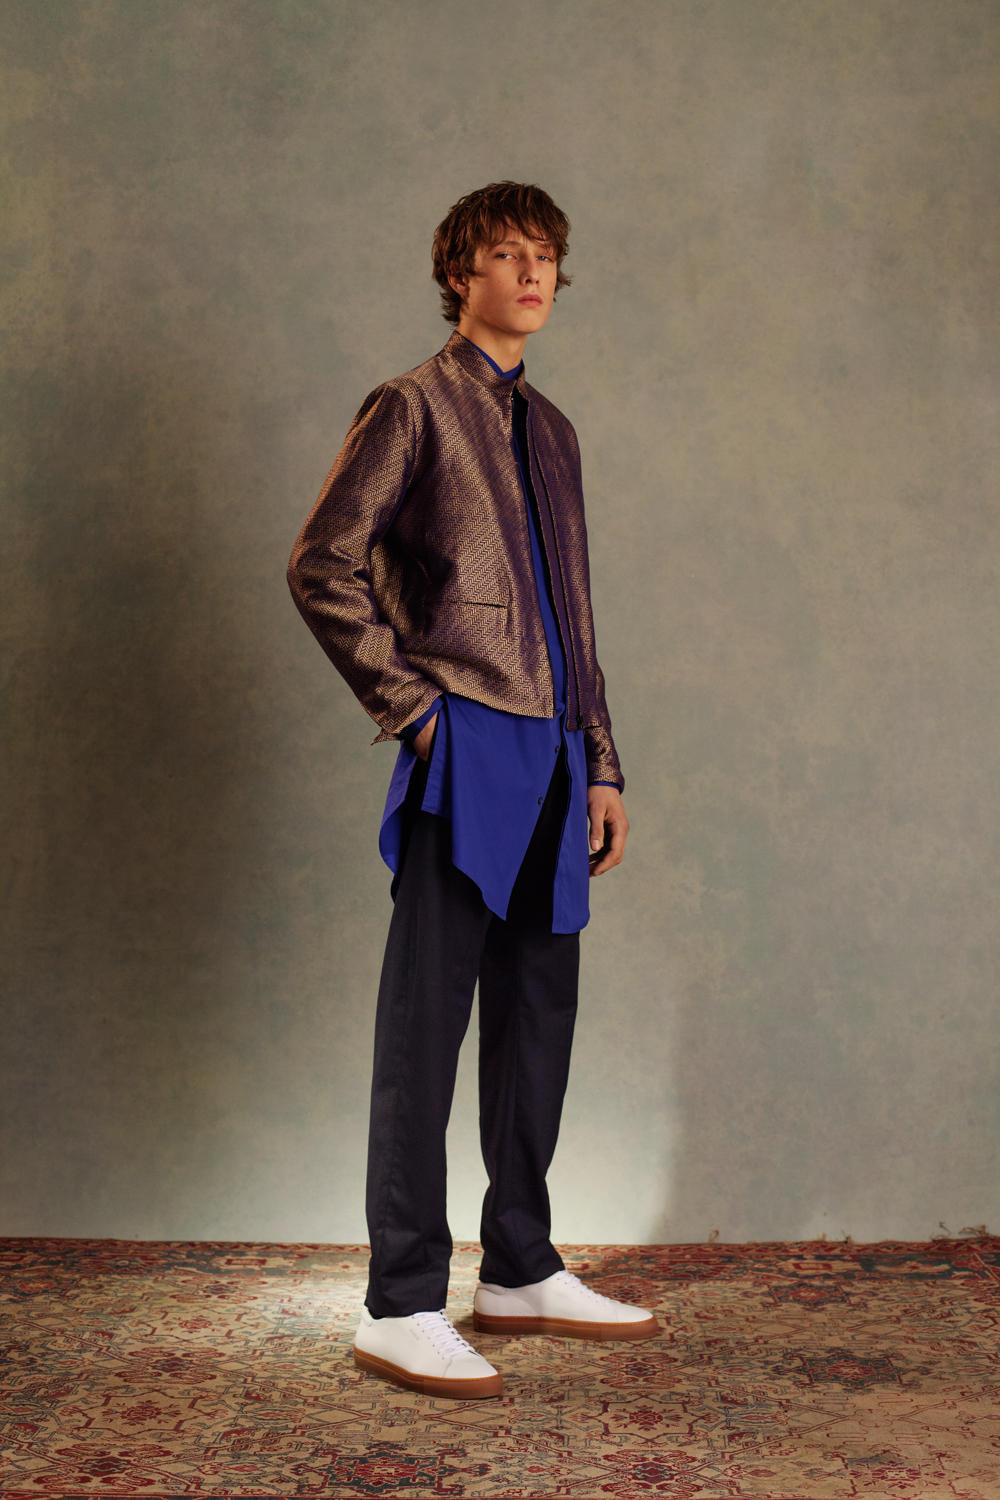 SARI BOMBER BOMBAY SHIRT LONG JODHPUR TROUSERS